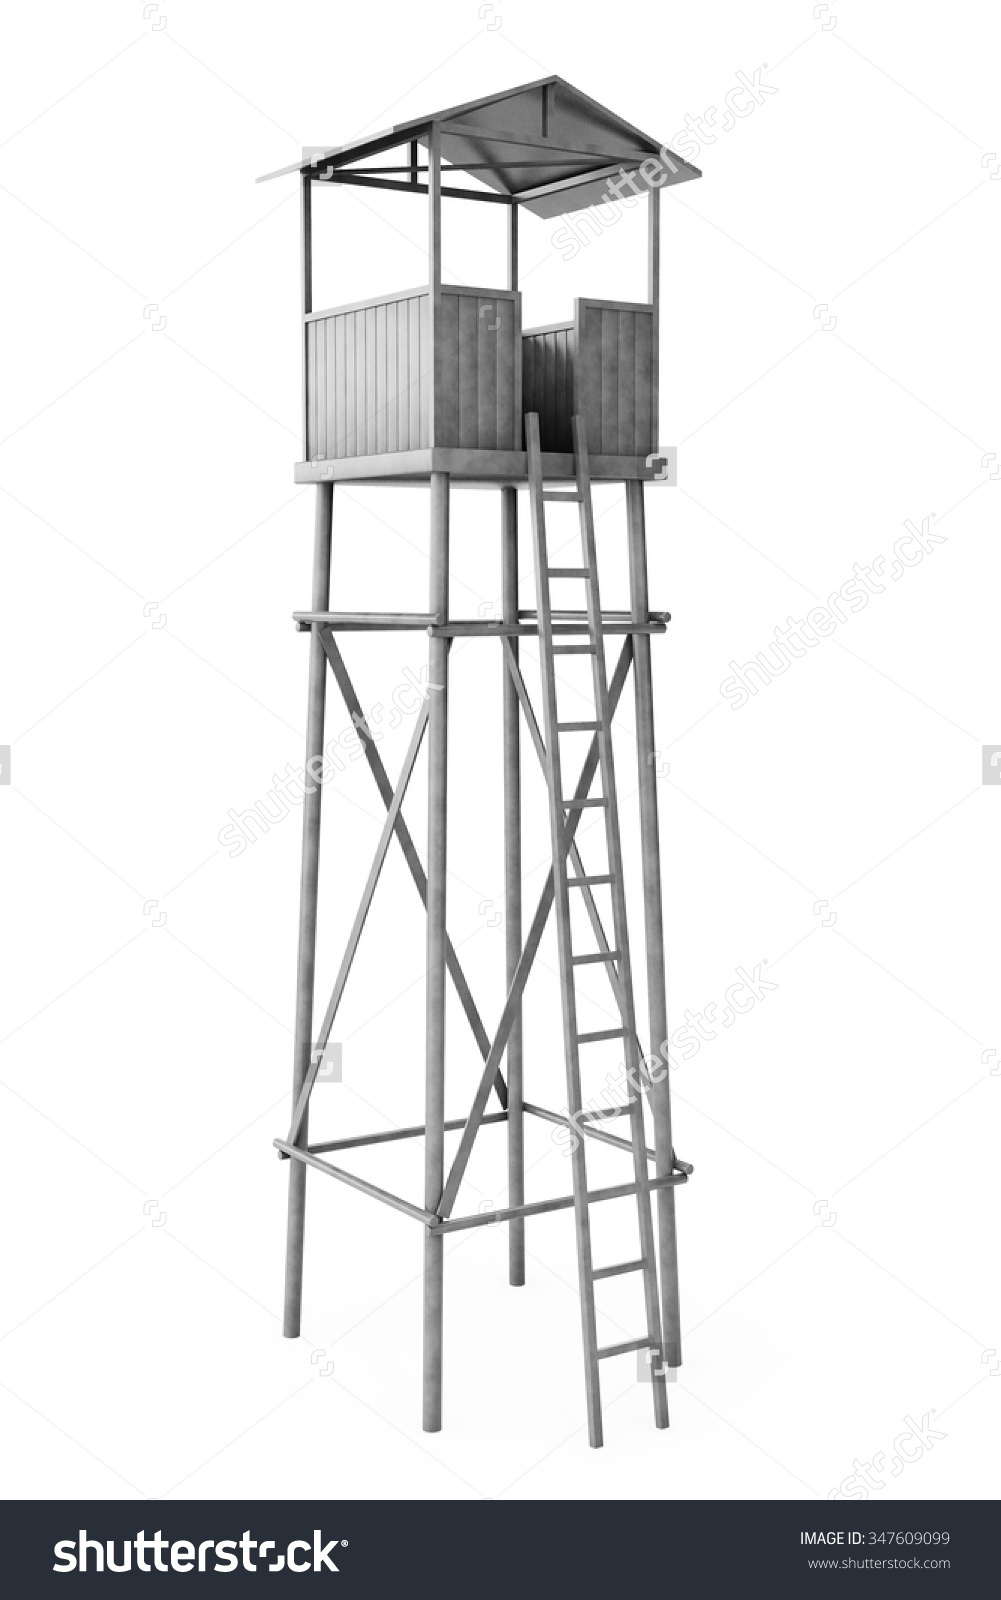 Old Wooden Watch Guard Tower On Stock Illustration 347609099.